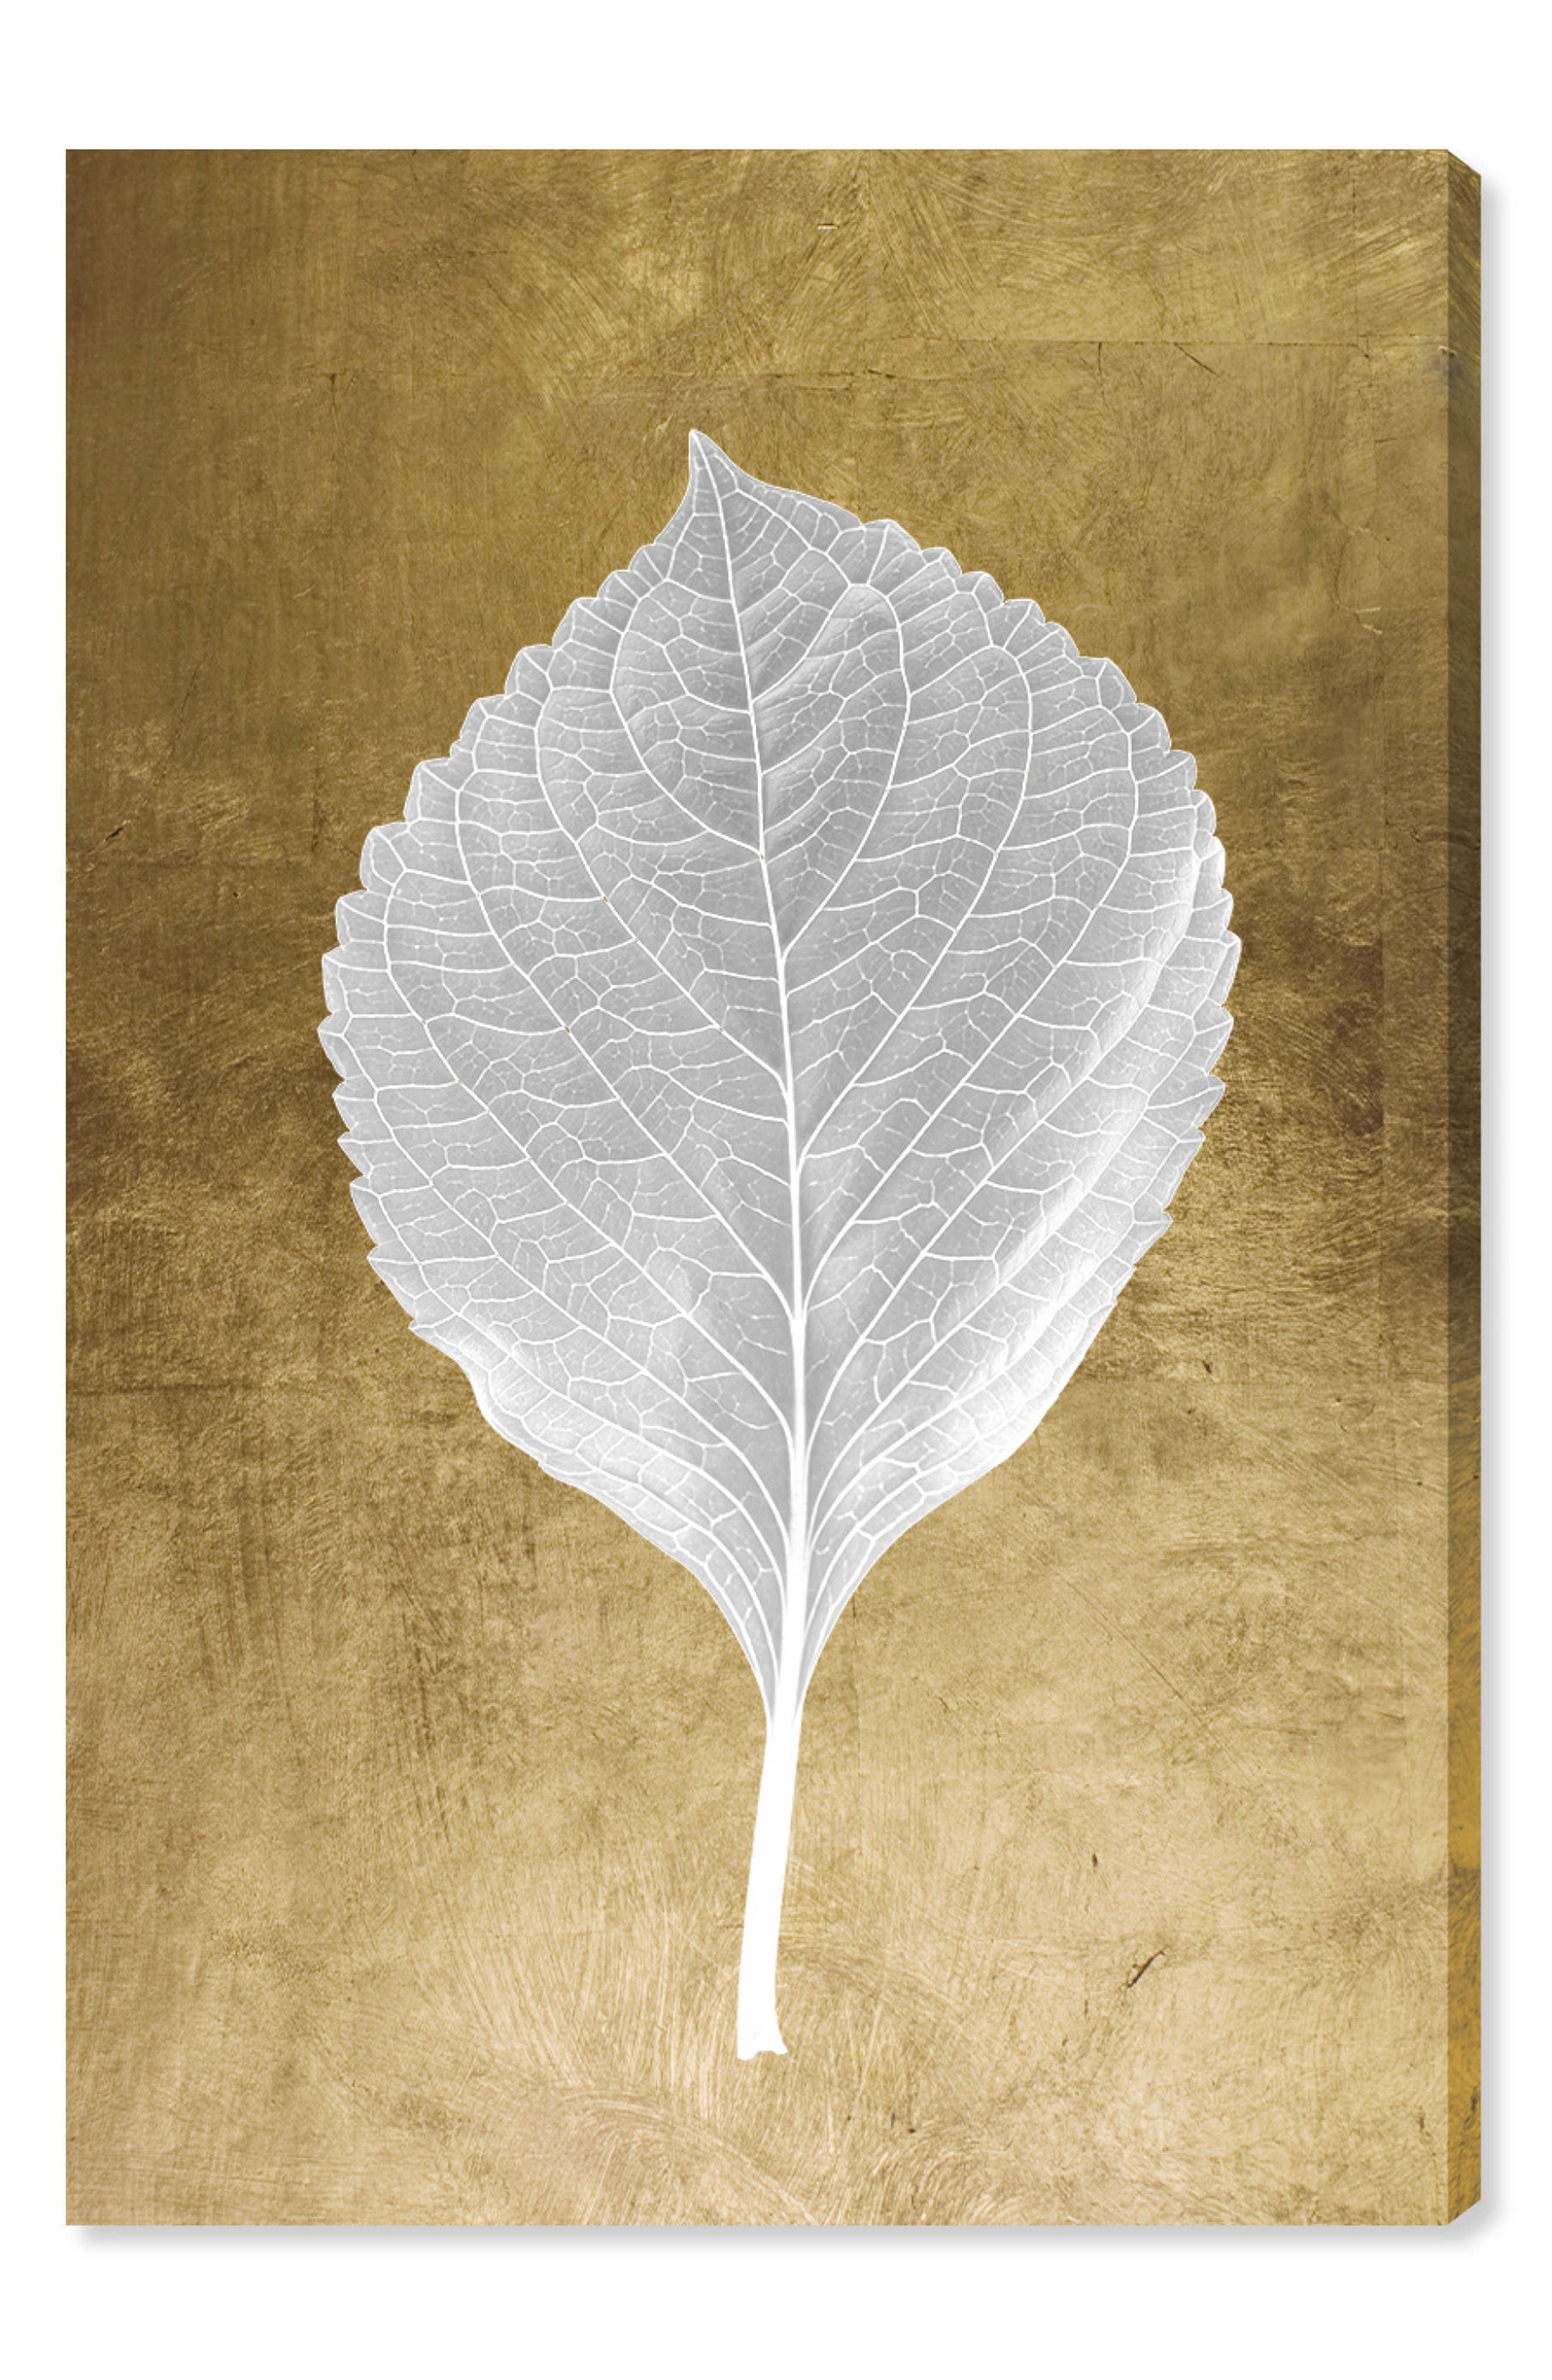 Main Image - Oliver Gal Leaf in Gold I Canvas Wall Art